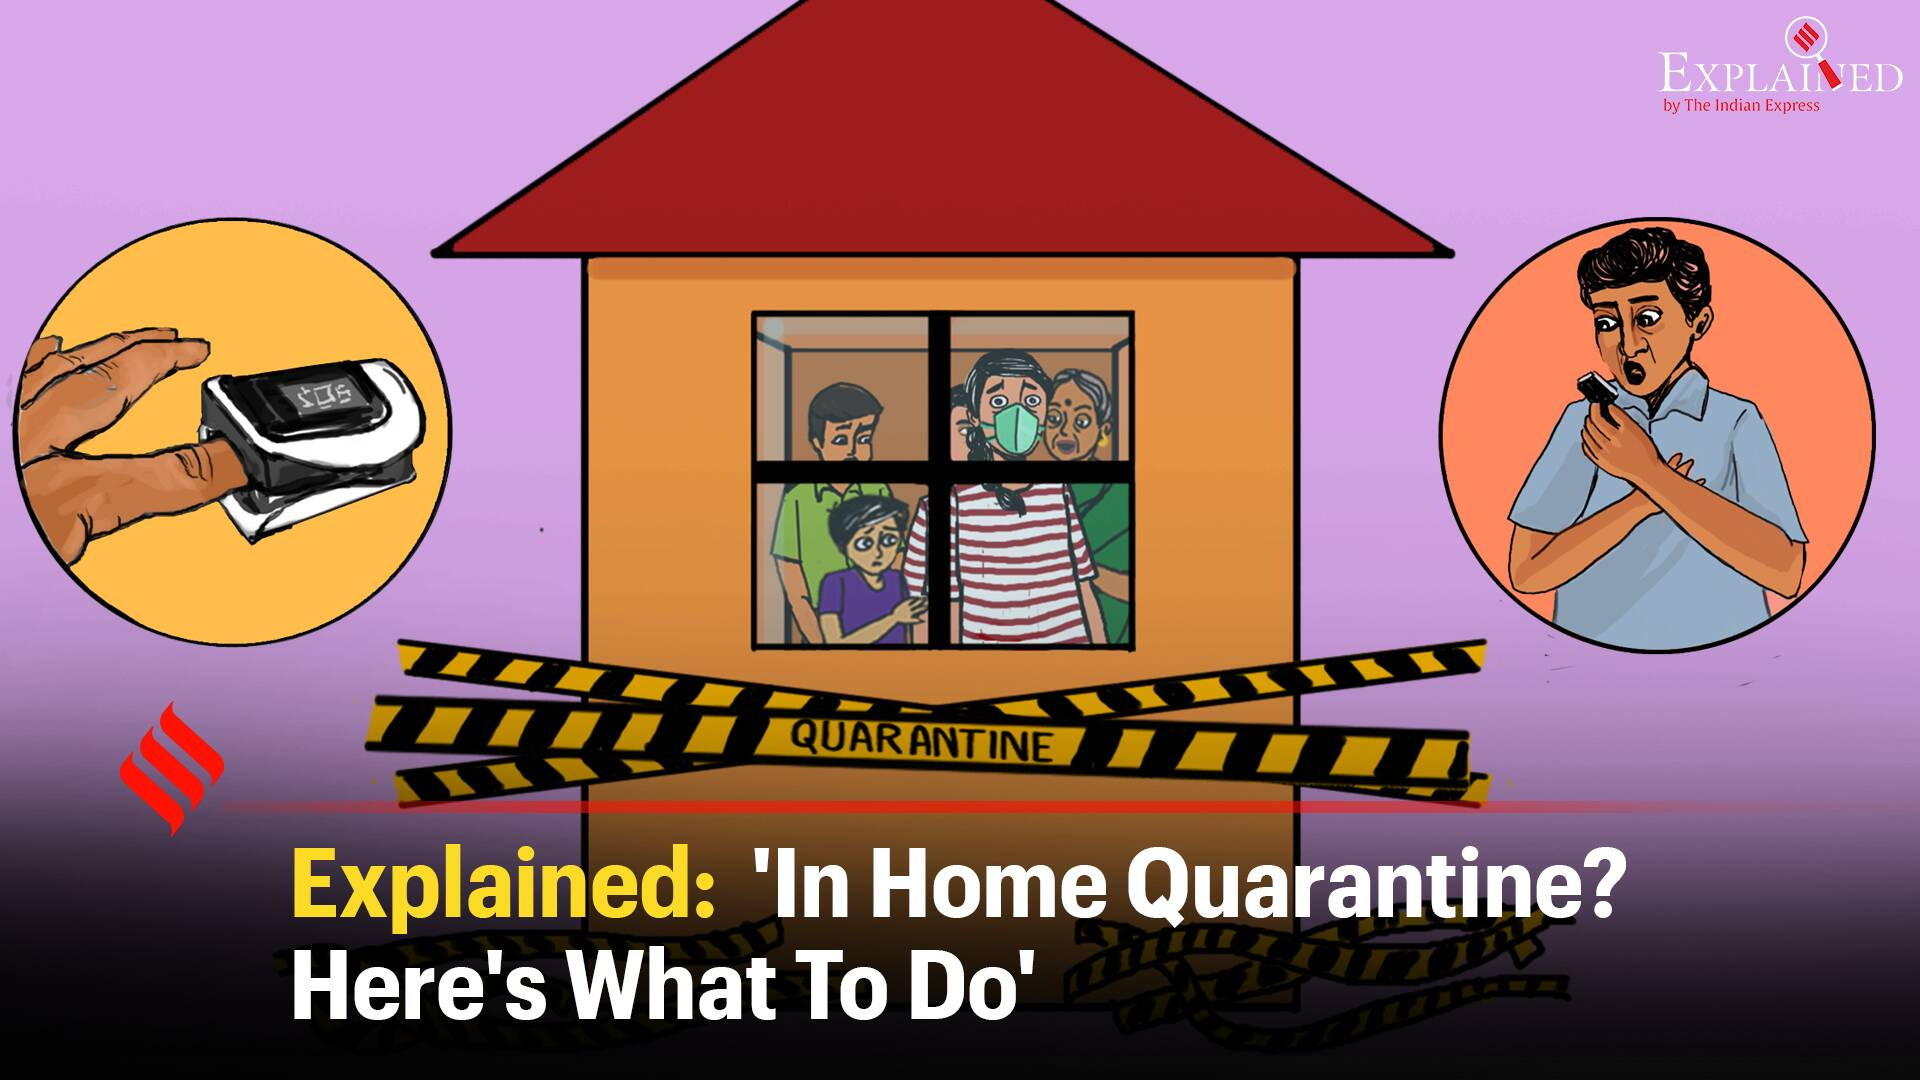 Explained: 'In Home Quarantine? Here's What To Do'